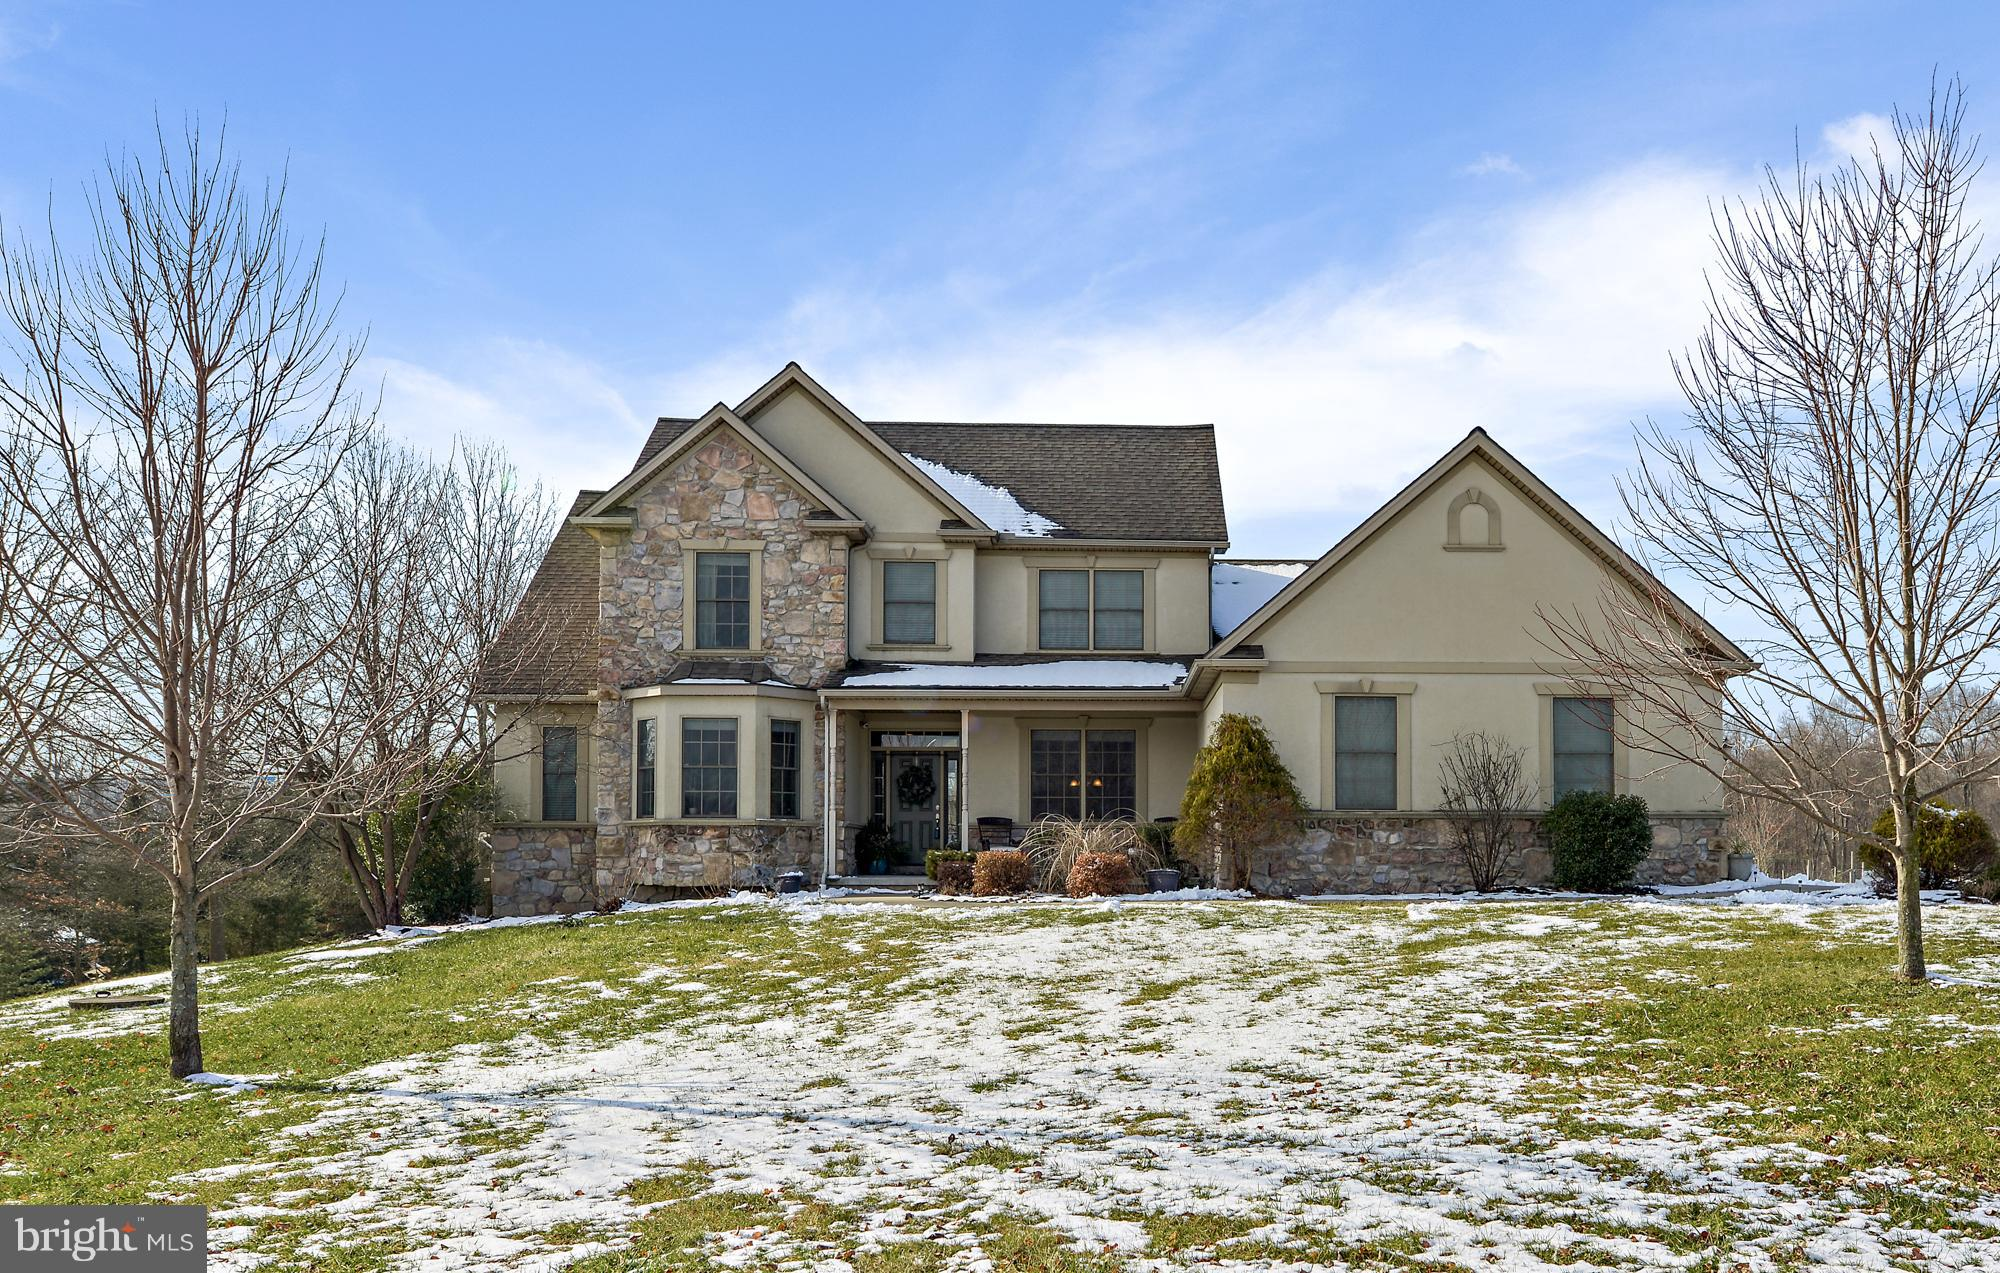 120 BUTTERCUP LANE, WELLSVILLE, PA 17365